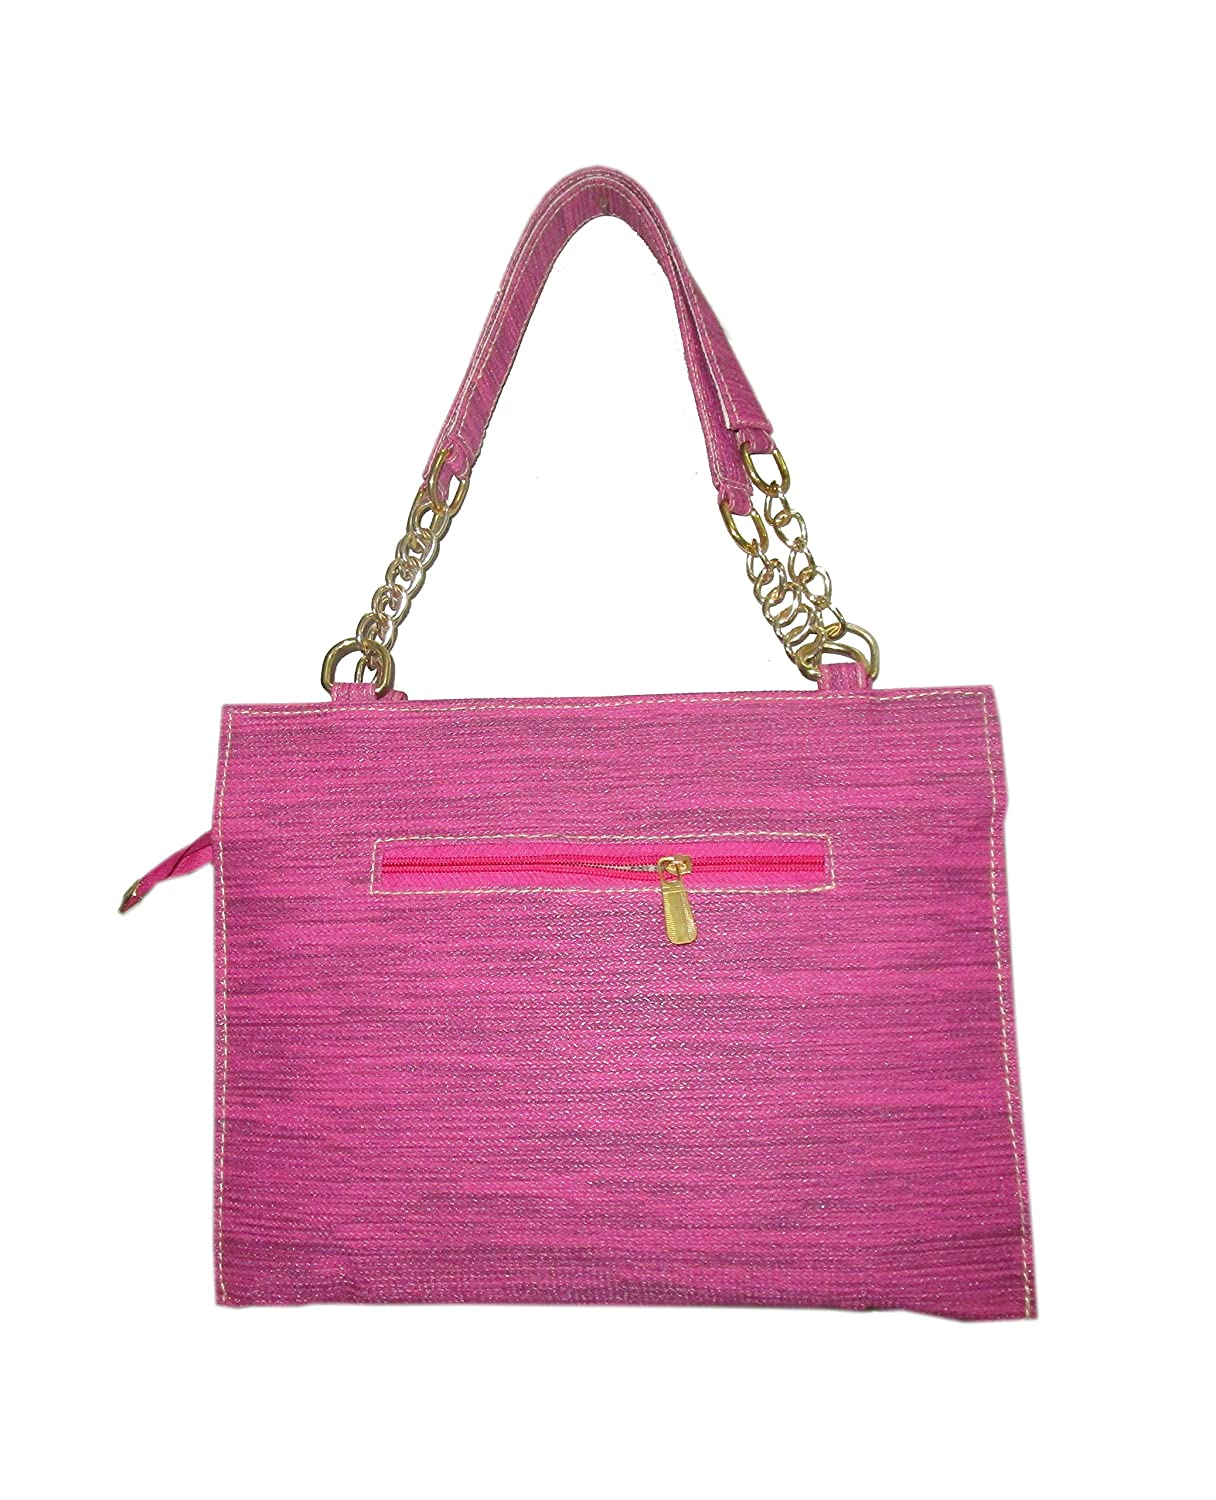 6683f95209 AJ STYLE Woman s sling bag (Pink)  Amazon.in  Shoes   Handbags